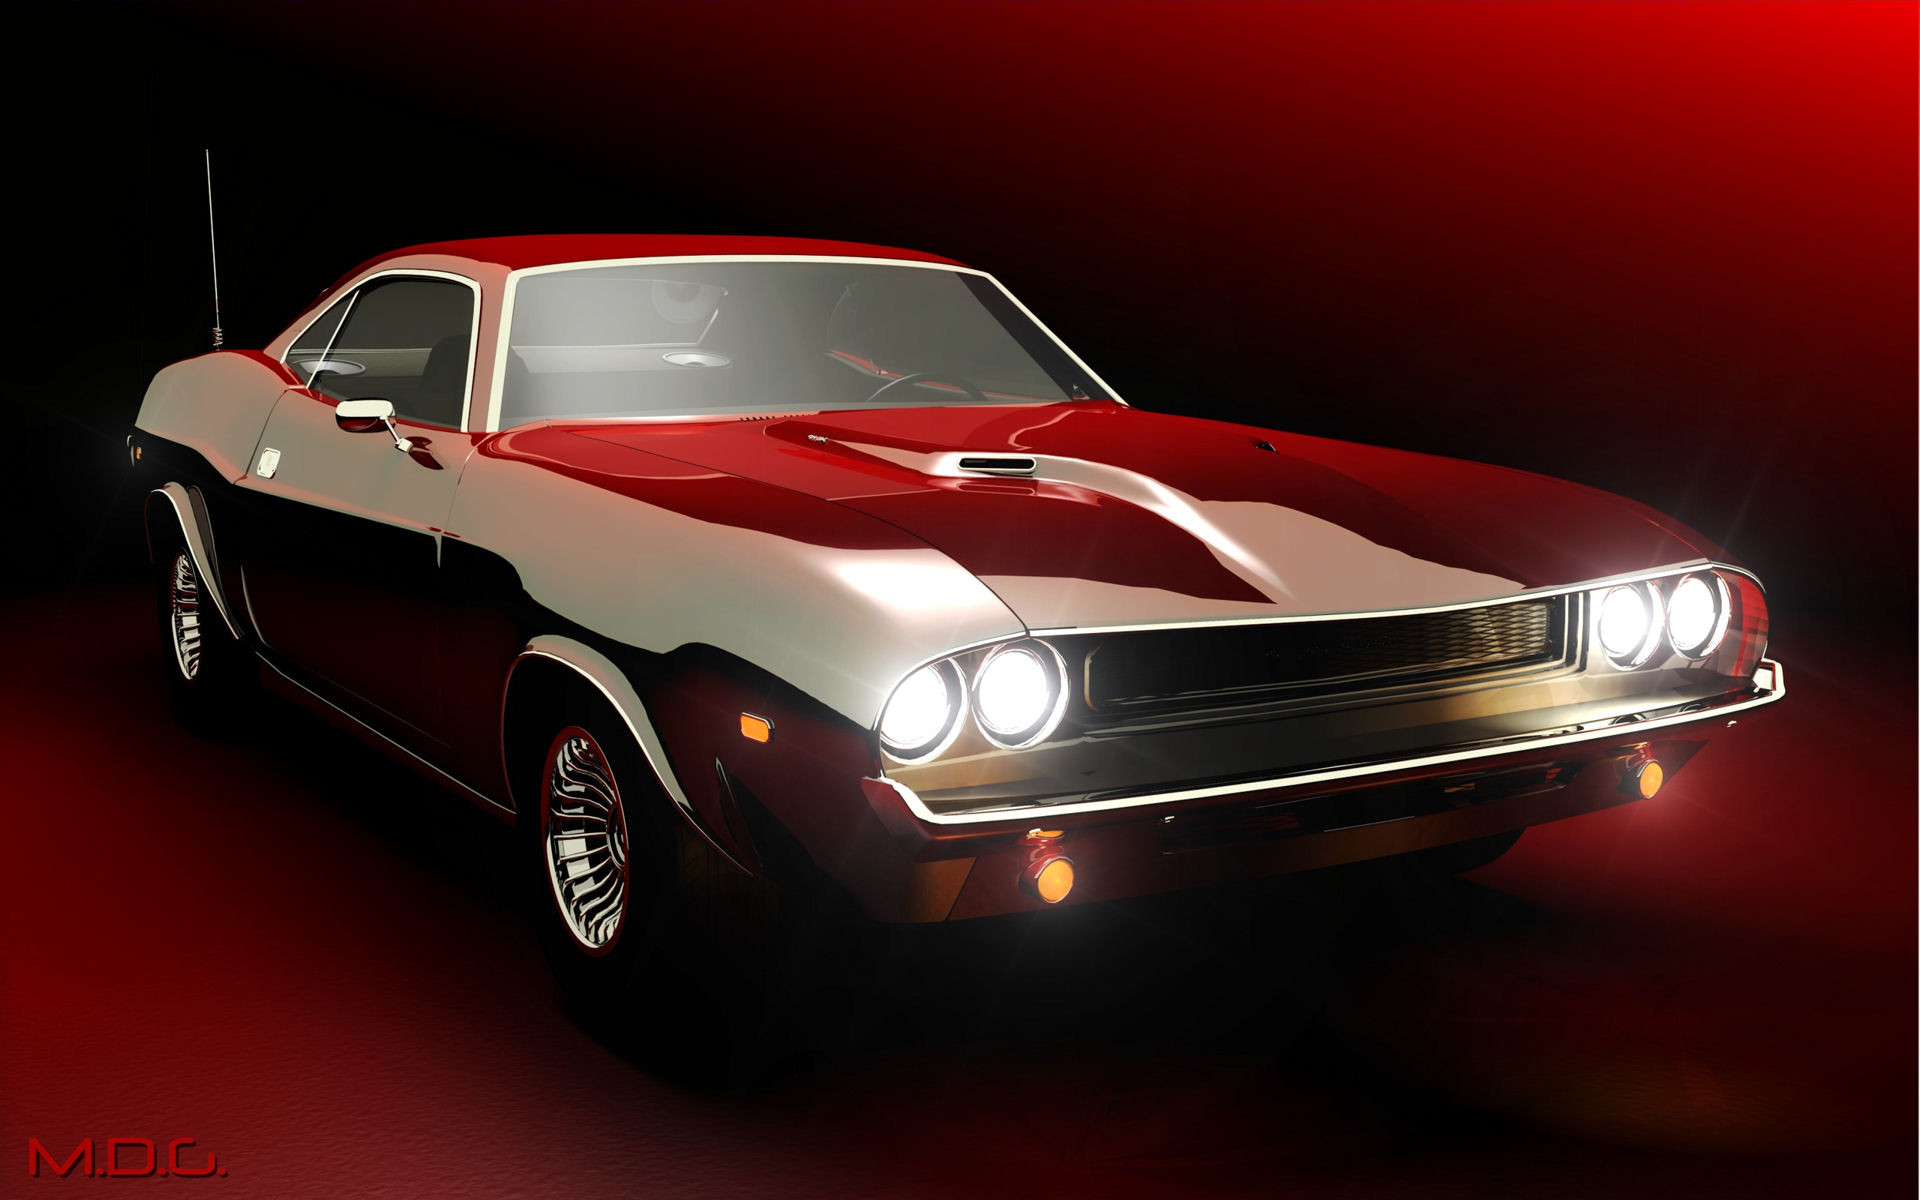 1920x1200 Hemi Barracuda Wallpaper image - Le Fancy Wallpapers · Desktop Pictures Wallpaper PicturesAmerican Muscle CarsDodge ...